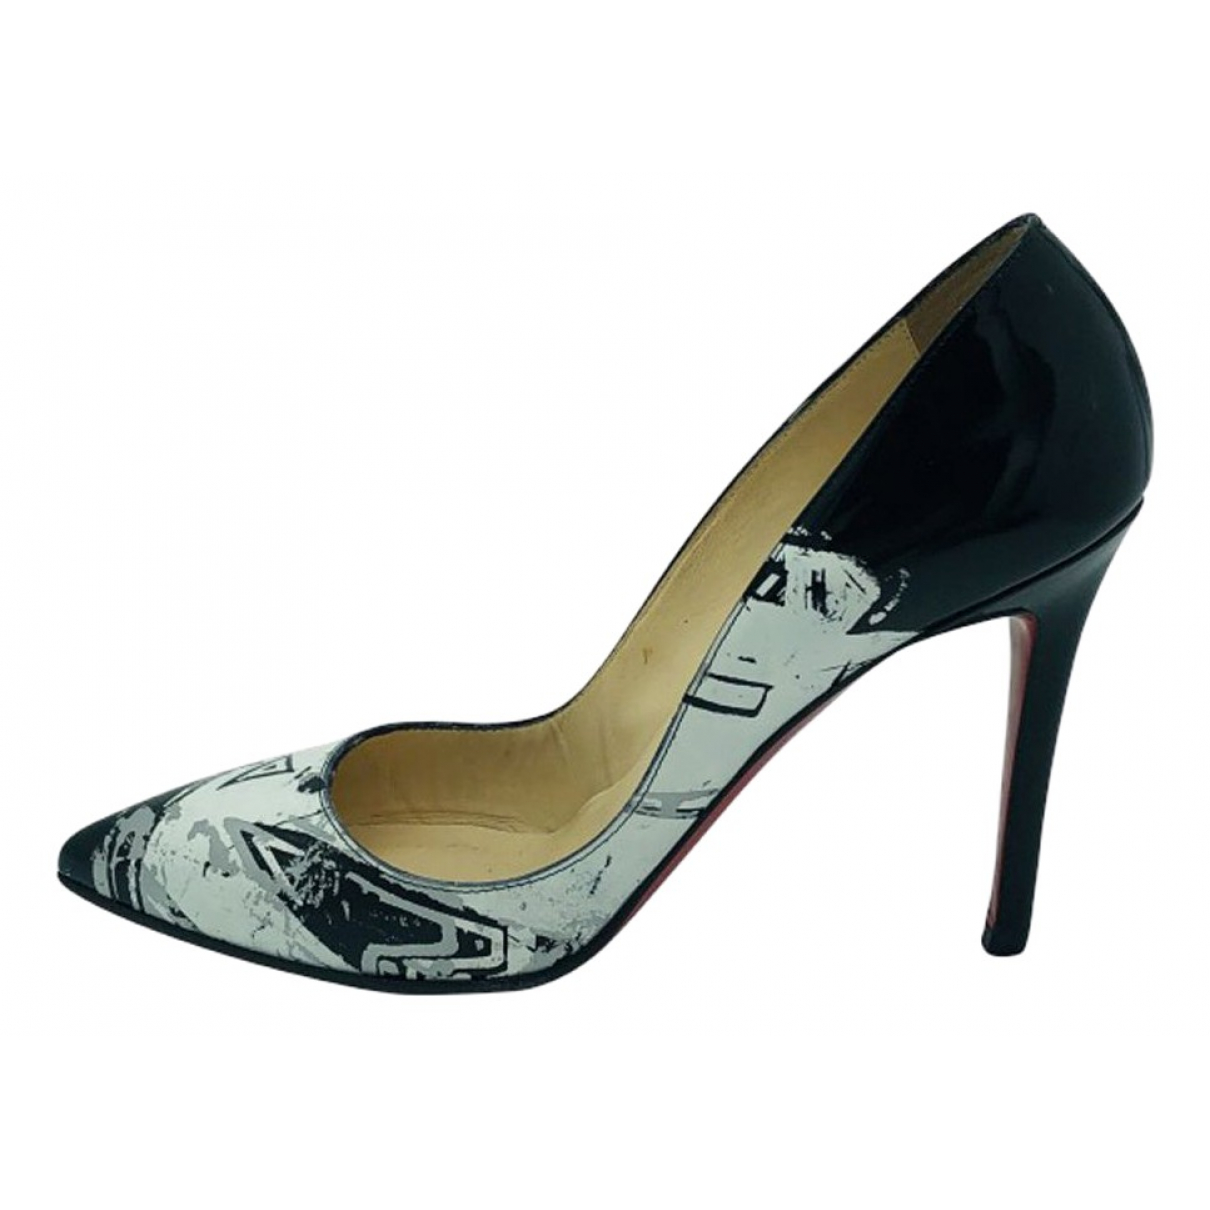 Christian Louboutin \N Black Patent leather Heels for Women 37.5 EU